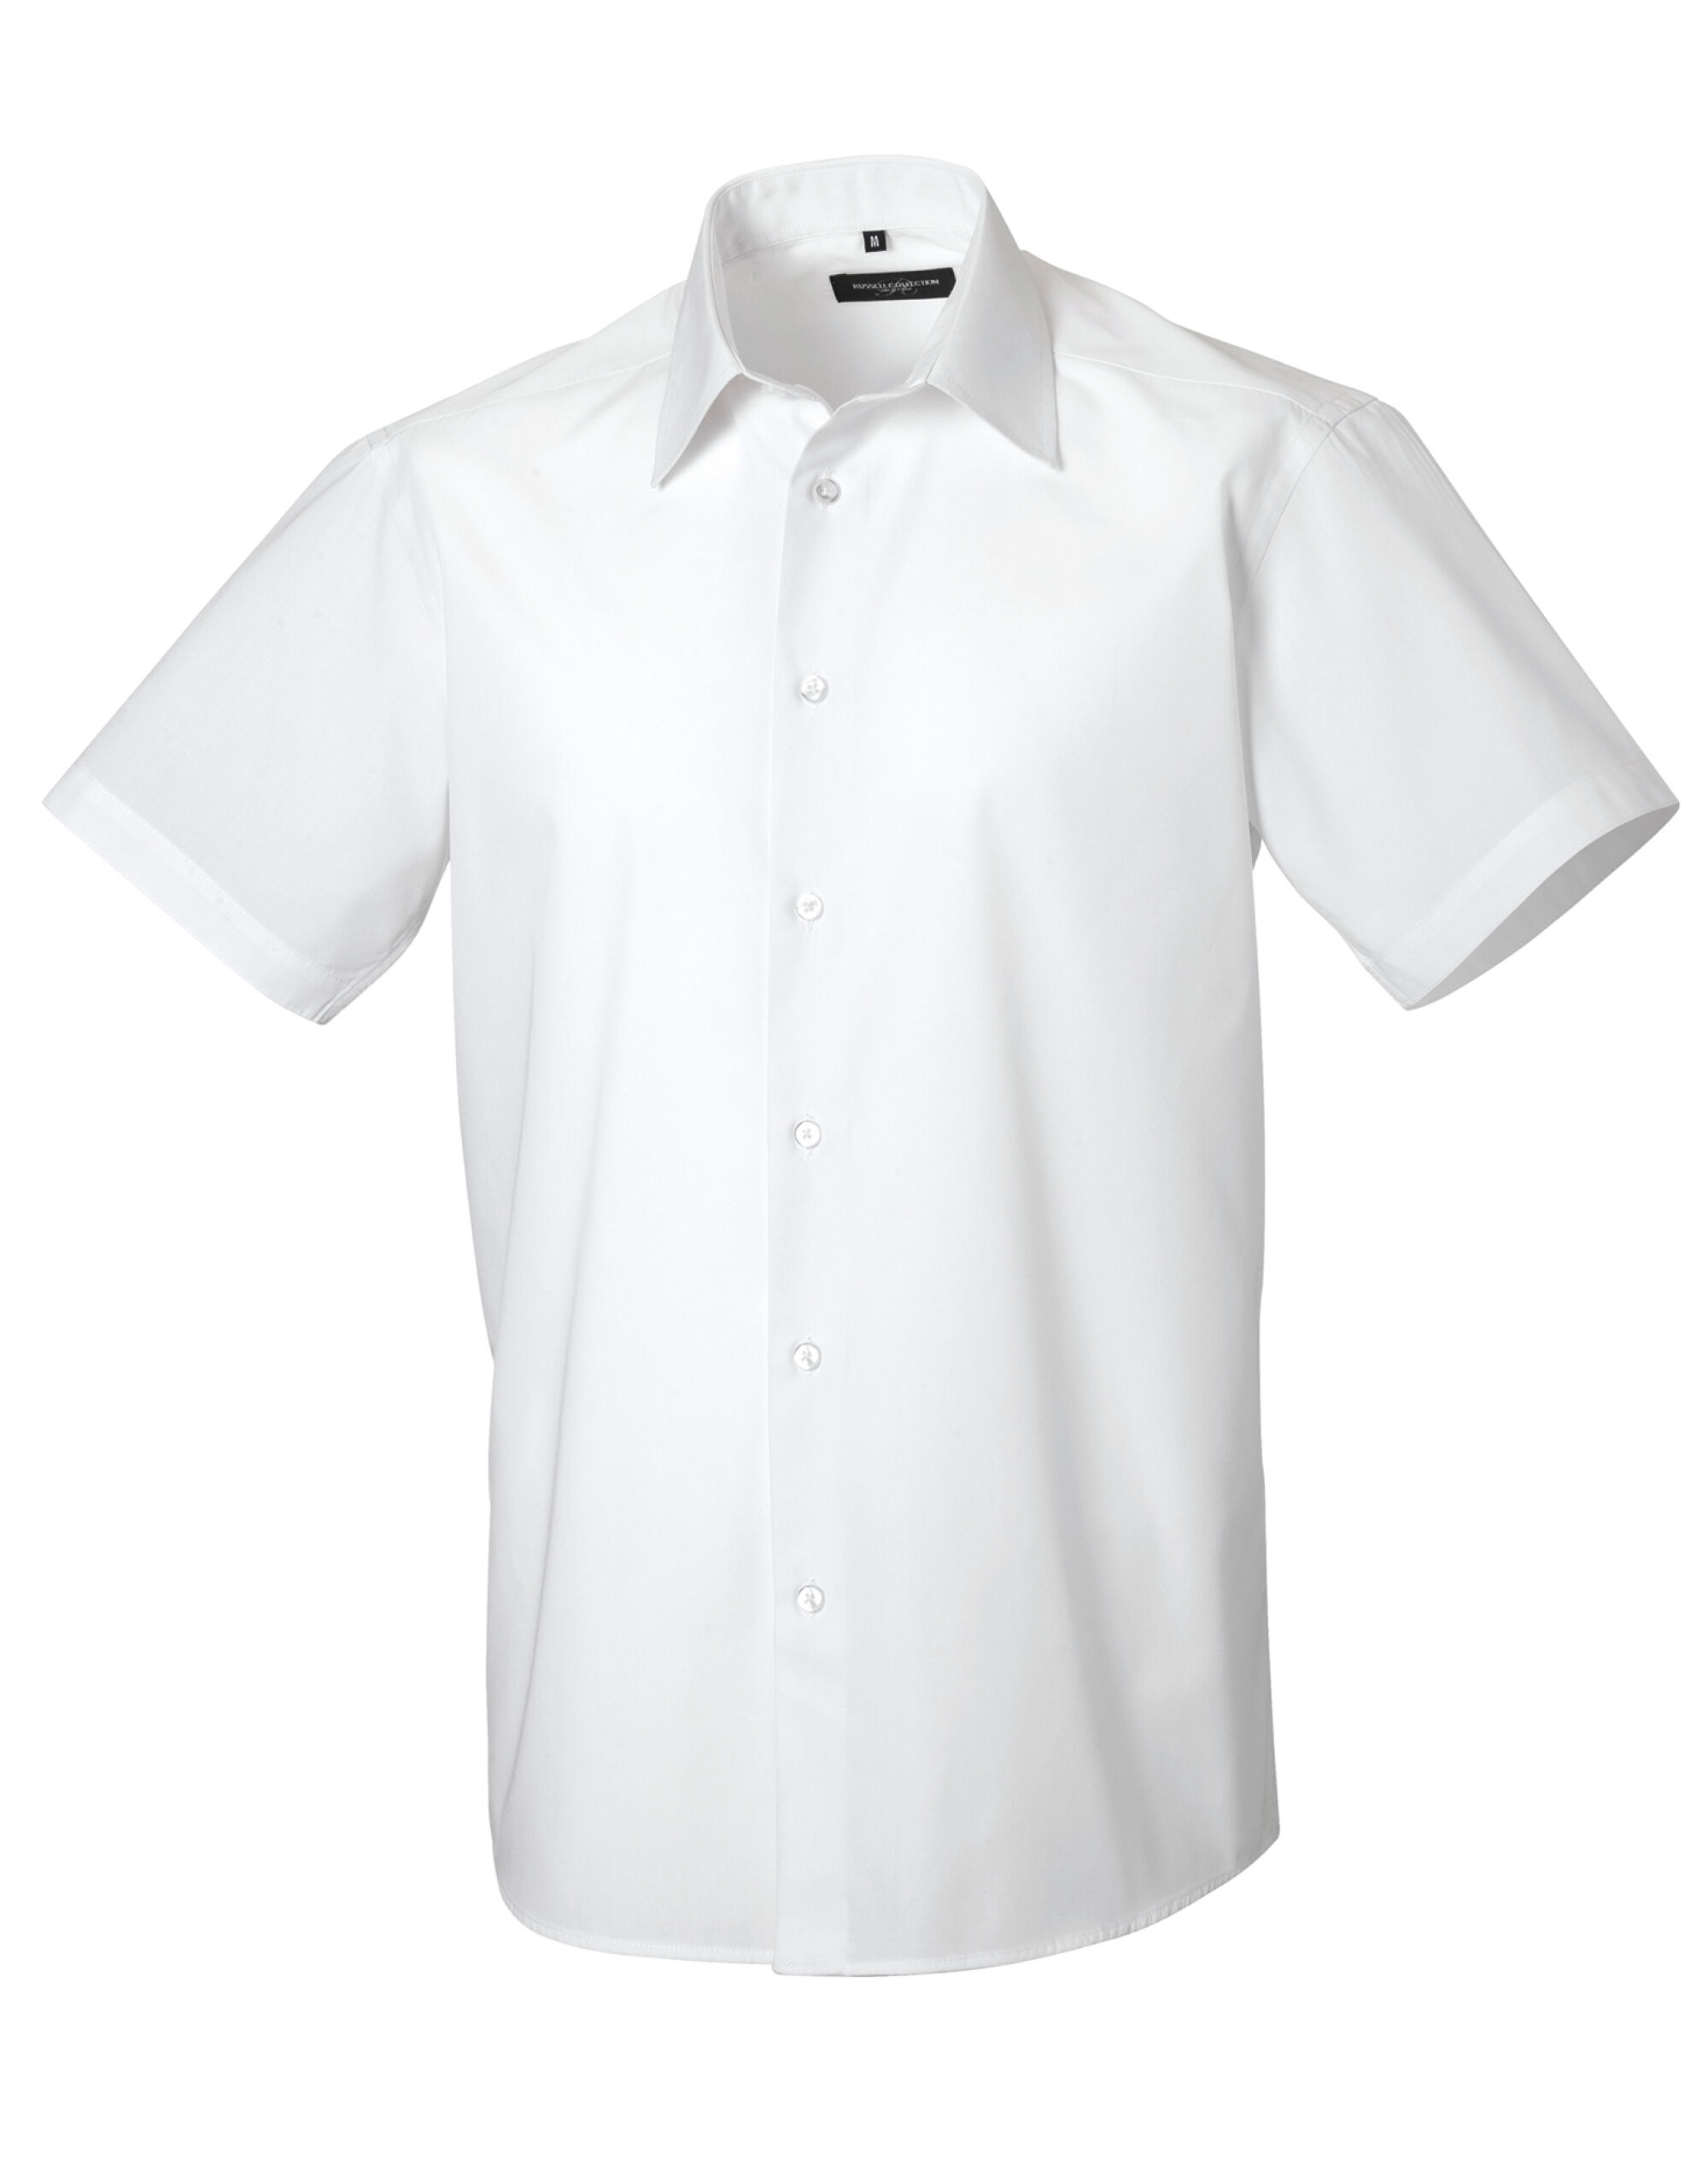 Men's Short Sleeve Poly-Cotton Easy Care Tailored Poplin Shirt